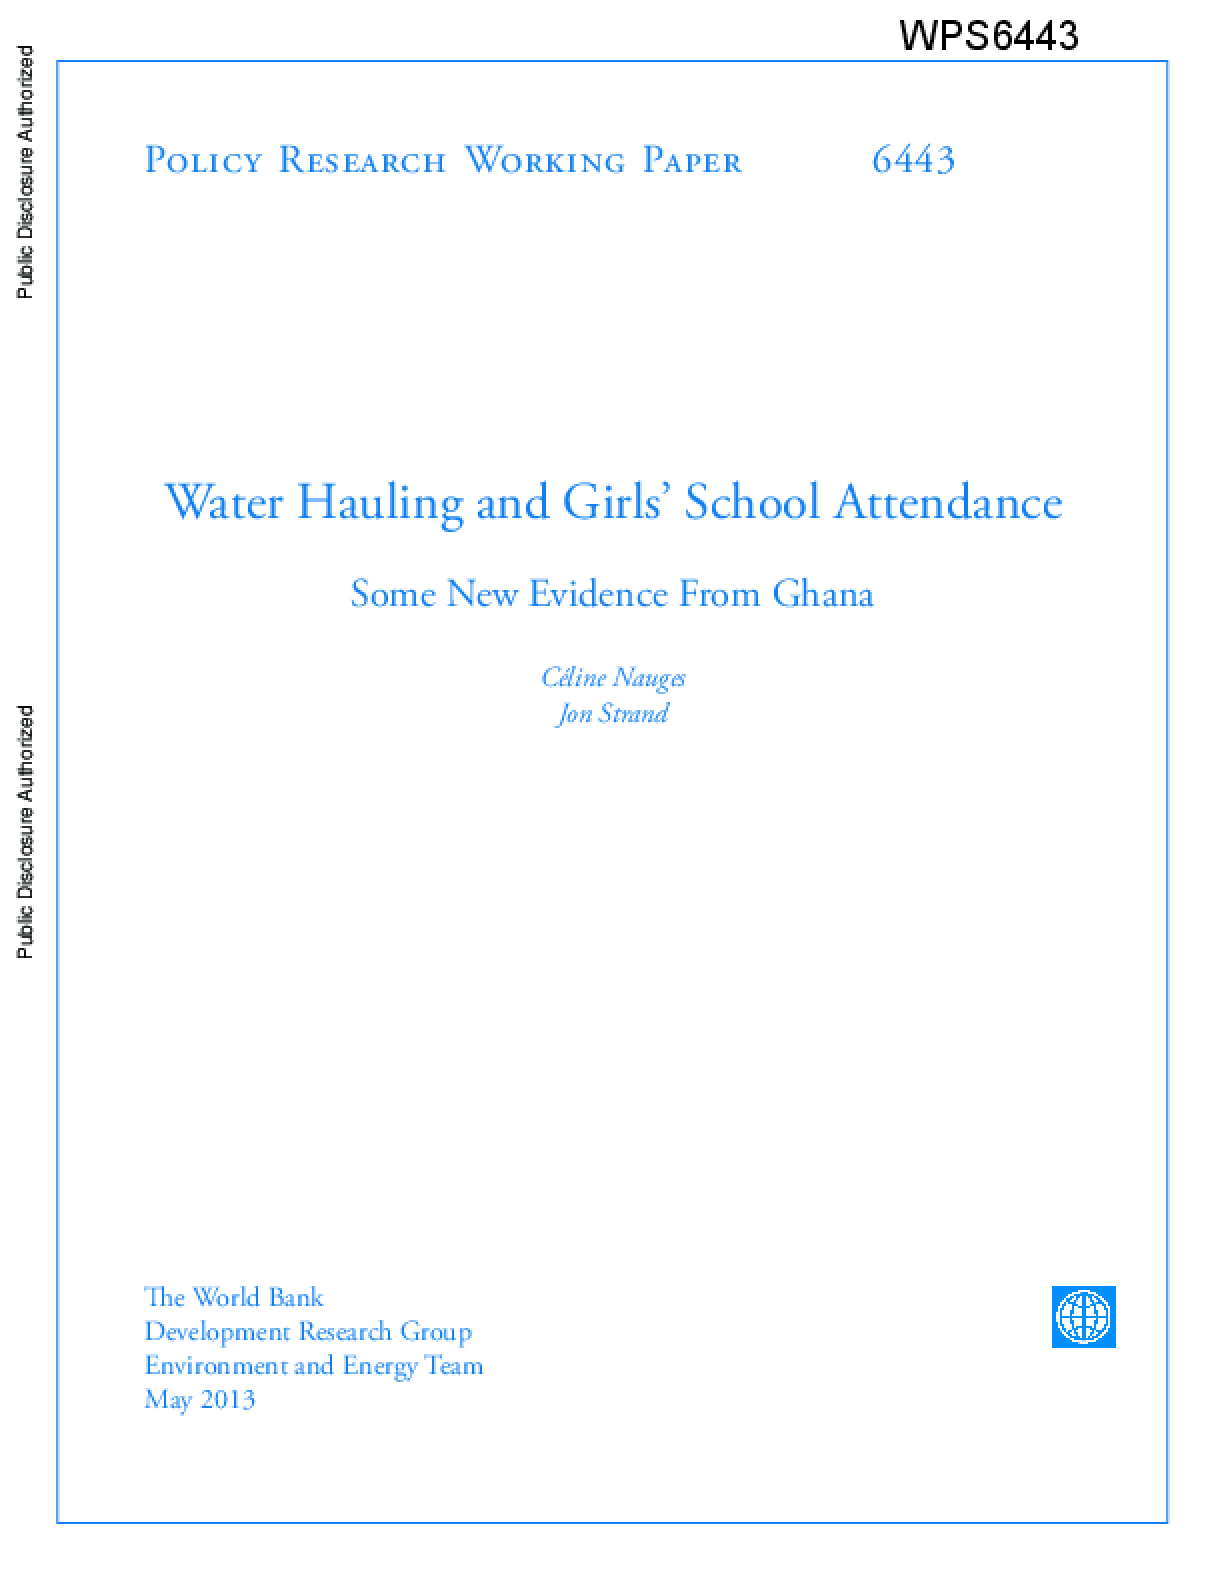 Water Hauling and Girls' School Attendance Some New Evidence From Ghana